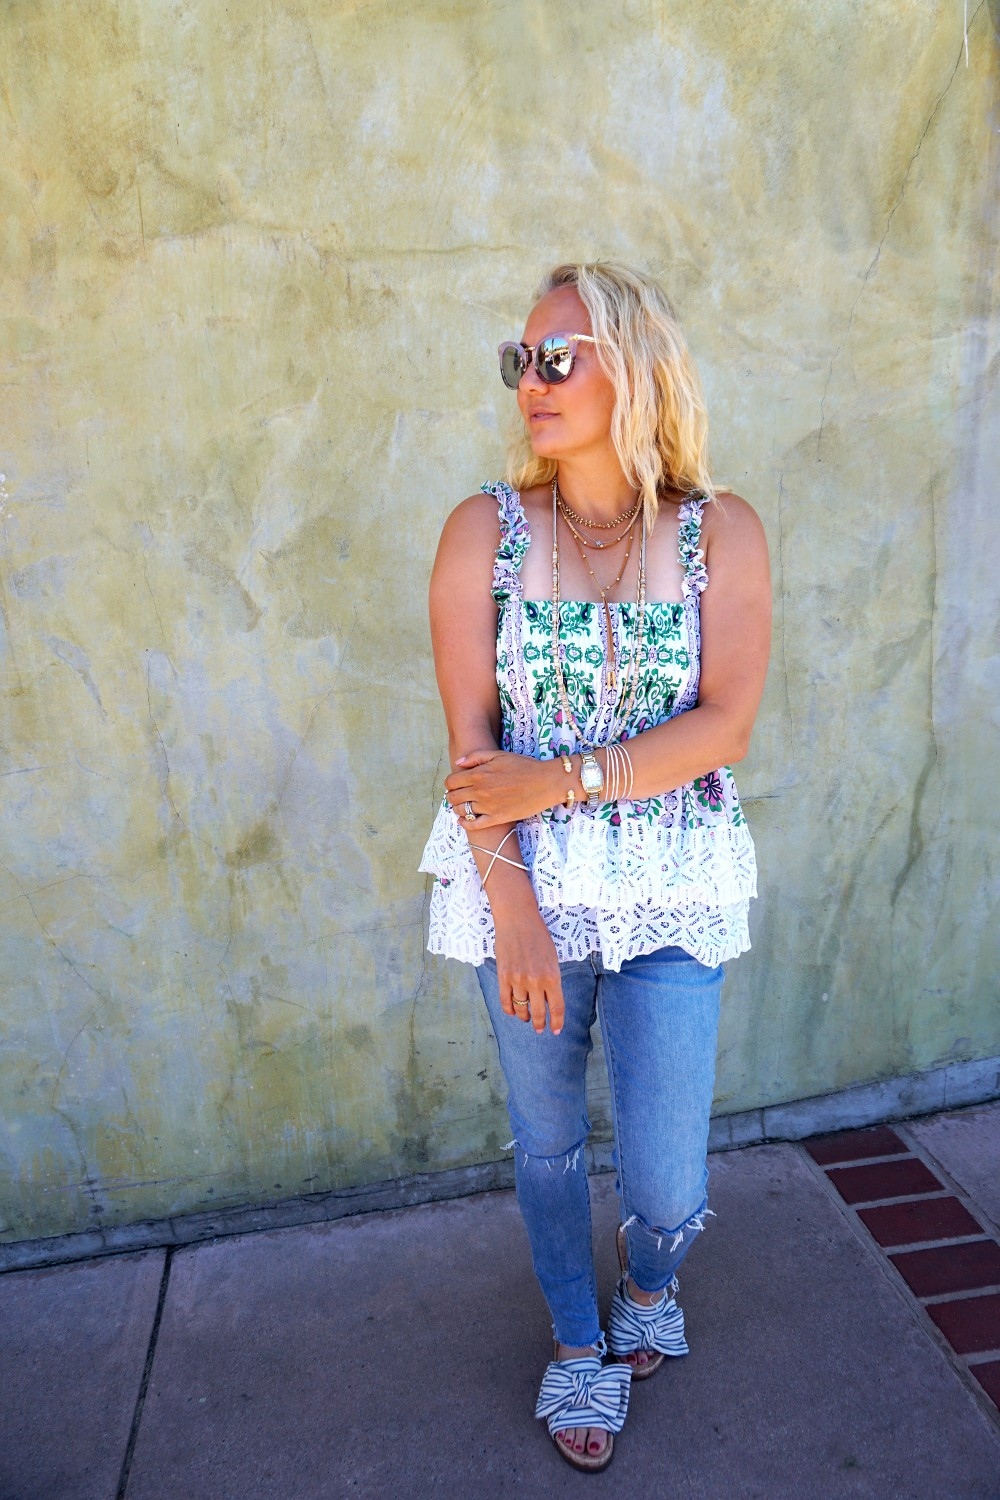 Tiered Babydoll Top-Lace Trim Silk Georgette Top by Tory Burch-Spring Outfit Inspiration-Bay Area Fashion Blogger-Weekend Style-Have Need Want 10